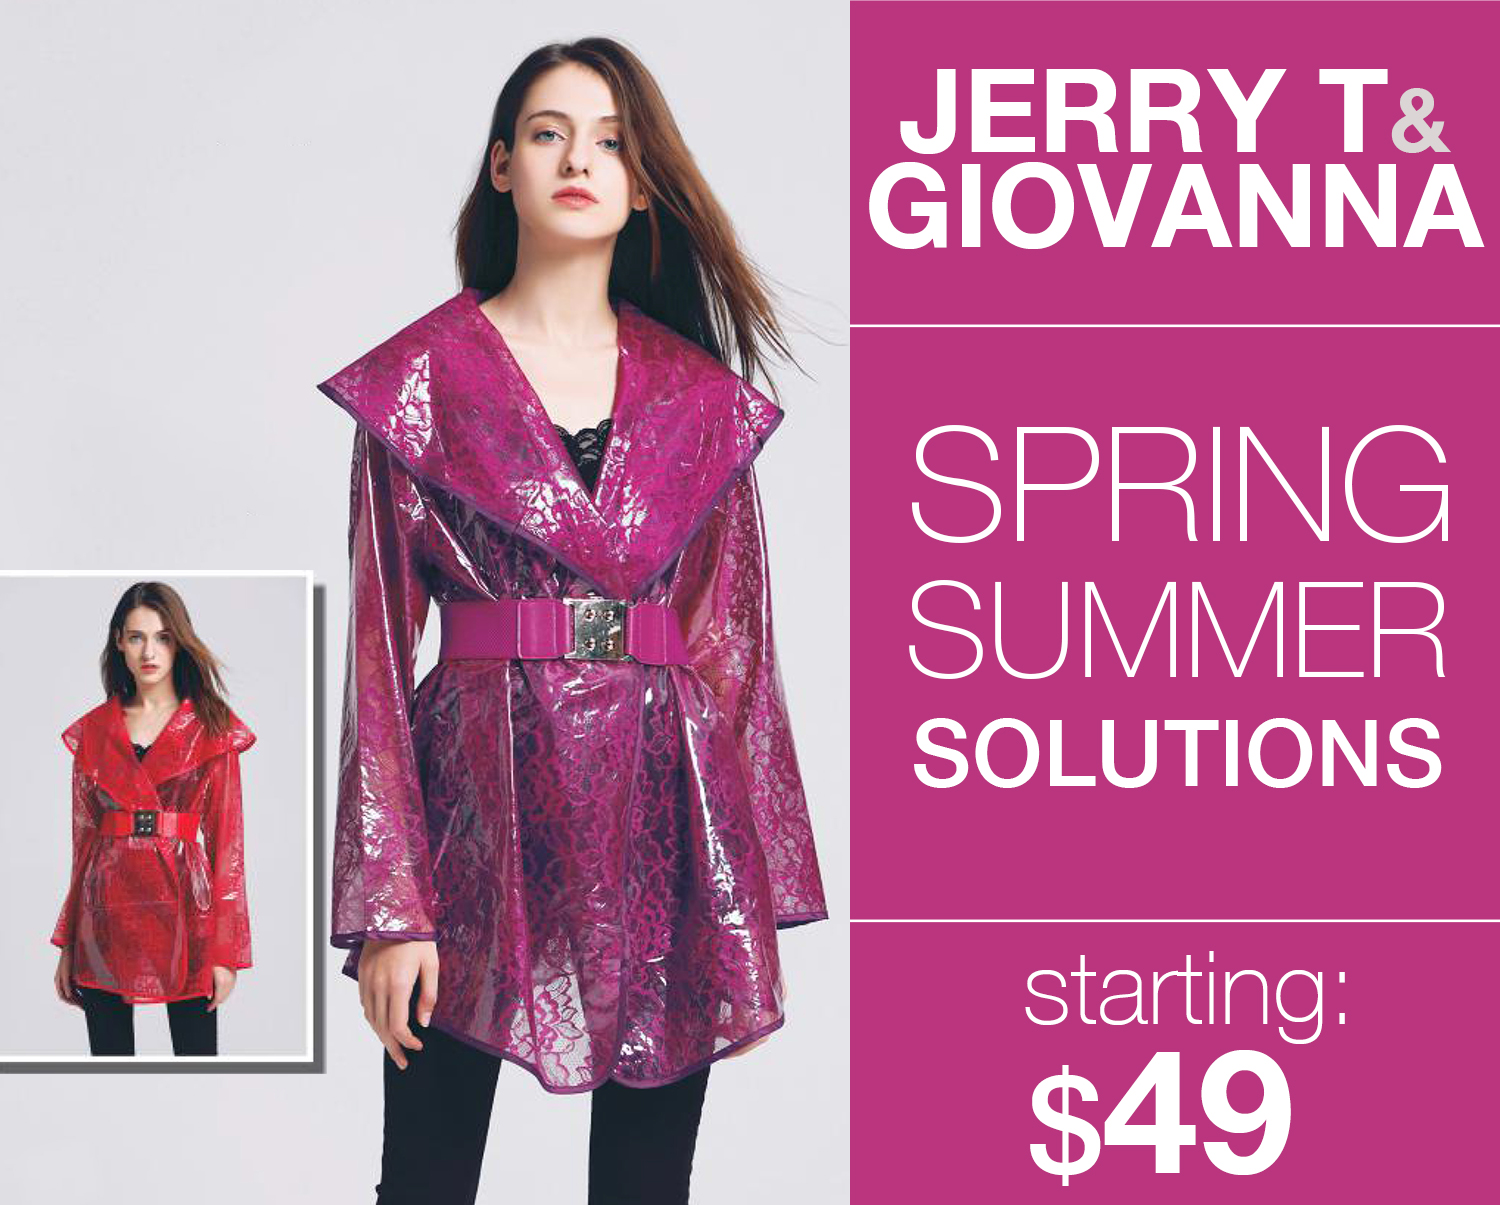 Jerry T With Giovanna High Style Fashions Spring And Summer 2019